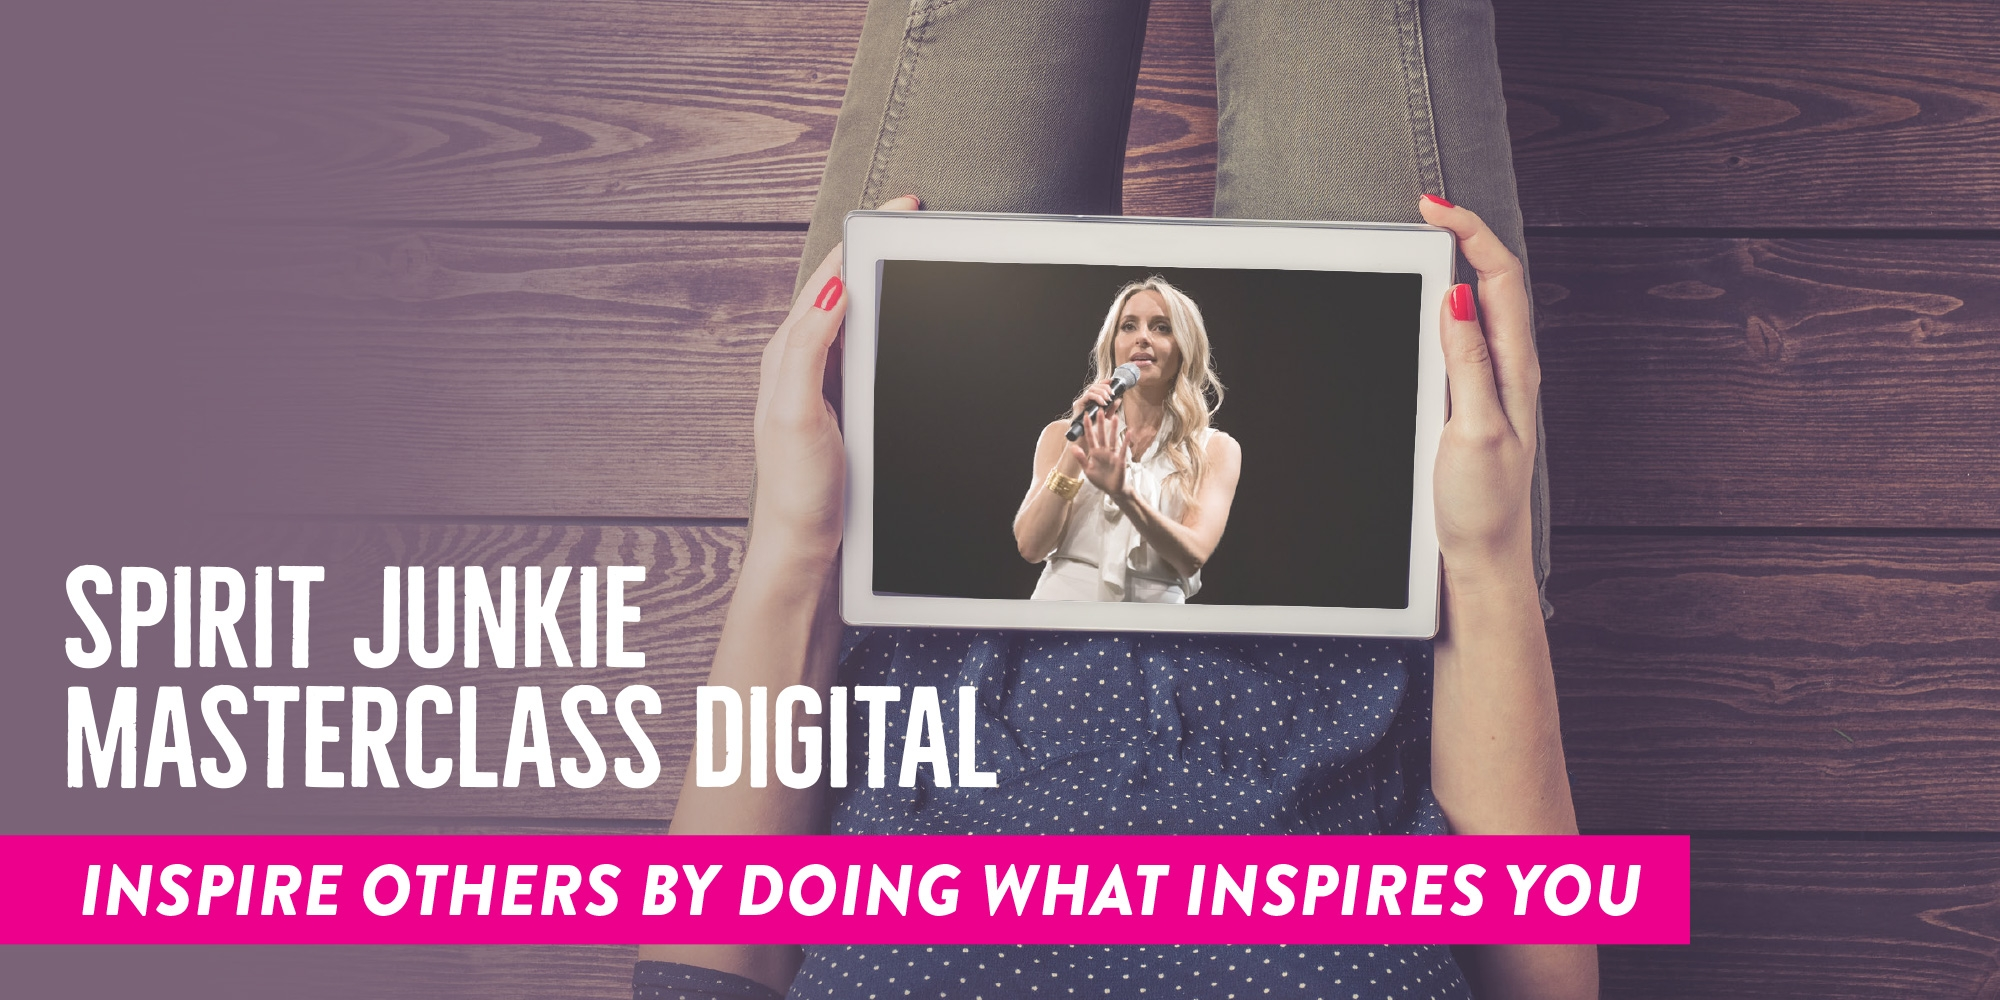 spirit junkie masterclass digital course